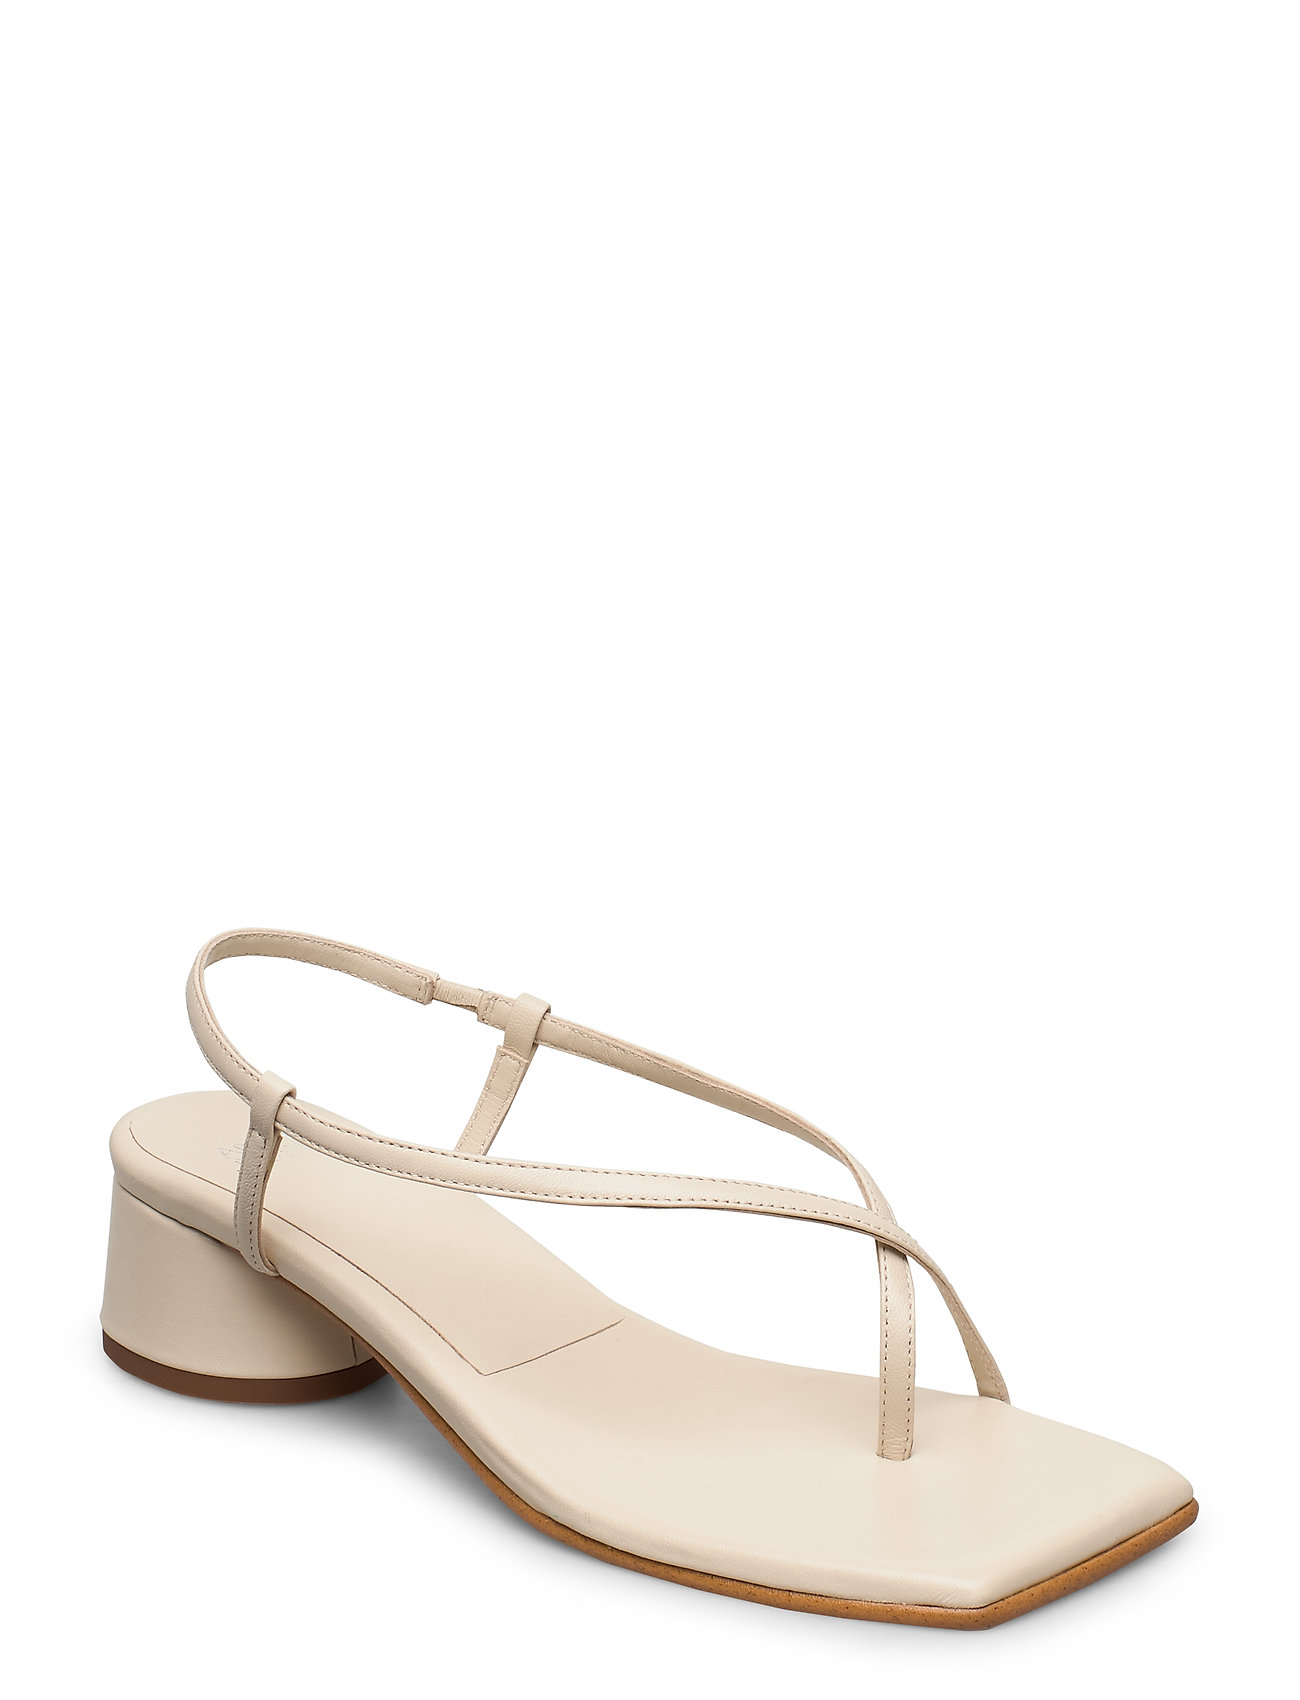 Image of All Day Long Thong Sandal Med Hæl Creme ANNY NORD (3406319131)